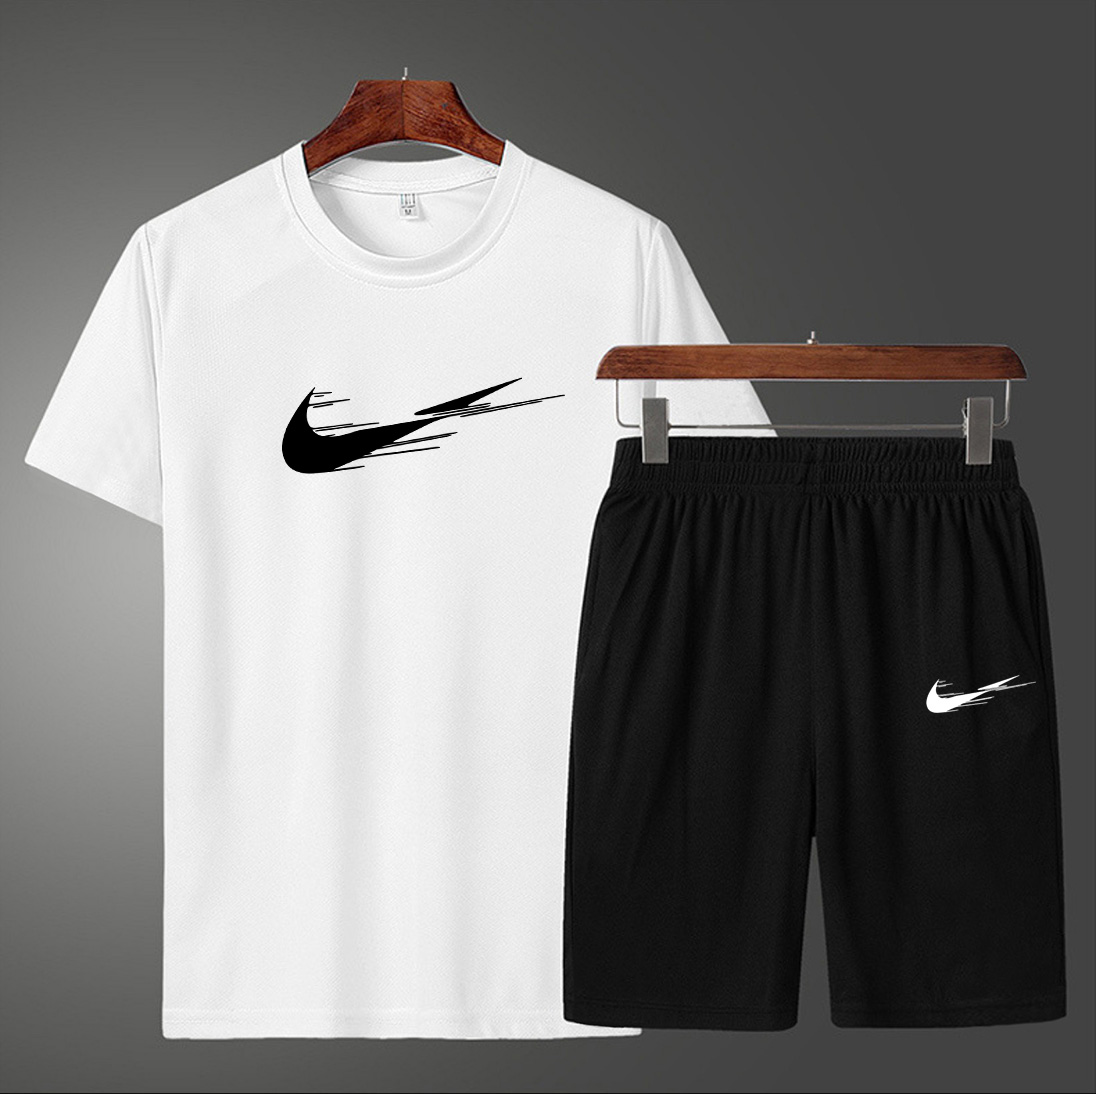 New 2 Pcs/Set Men's Tracksuit Gym Fitness badminton Sports Suit Clothes Running Jogging Wear Exercise Wor fitness running short